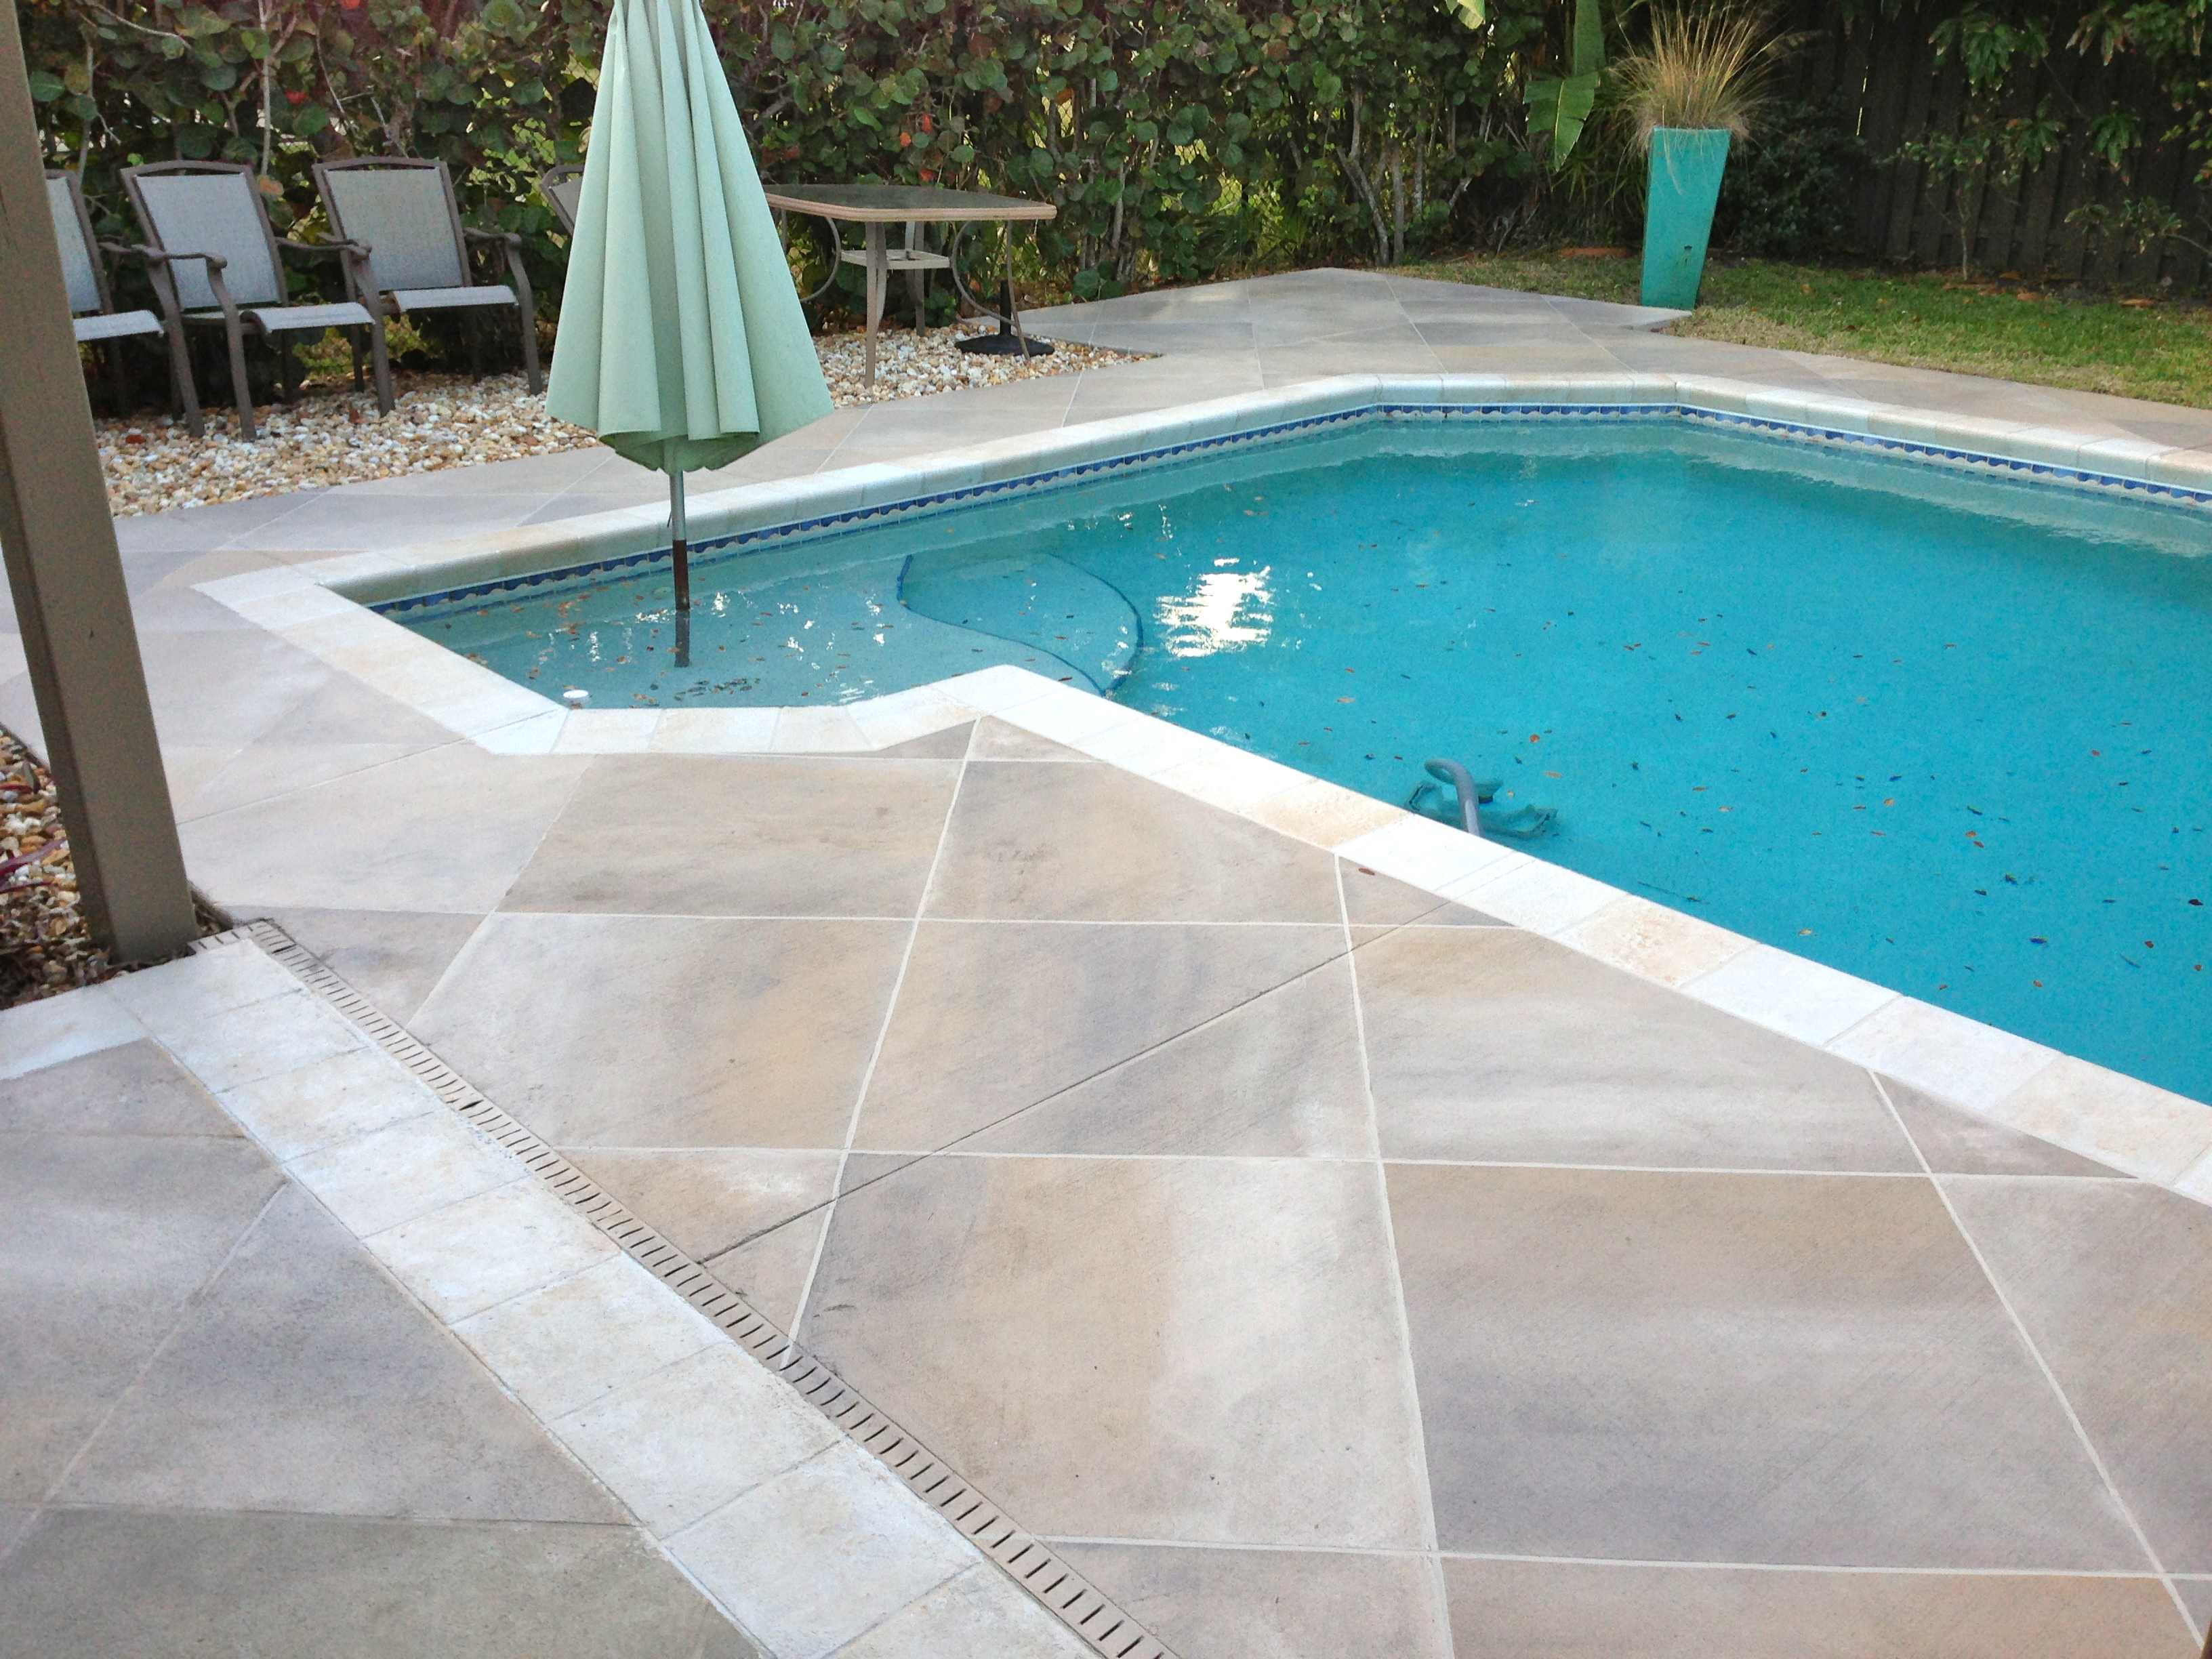 Pool Deck Carpet Ip93 Roccommunity with dimensions 3264 X 2448